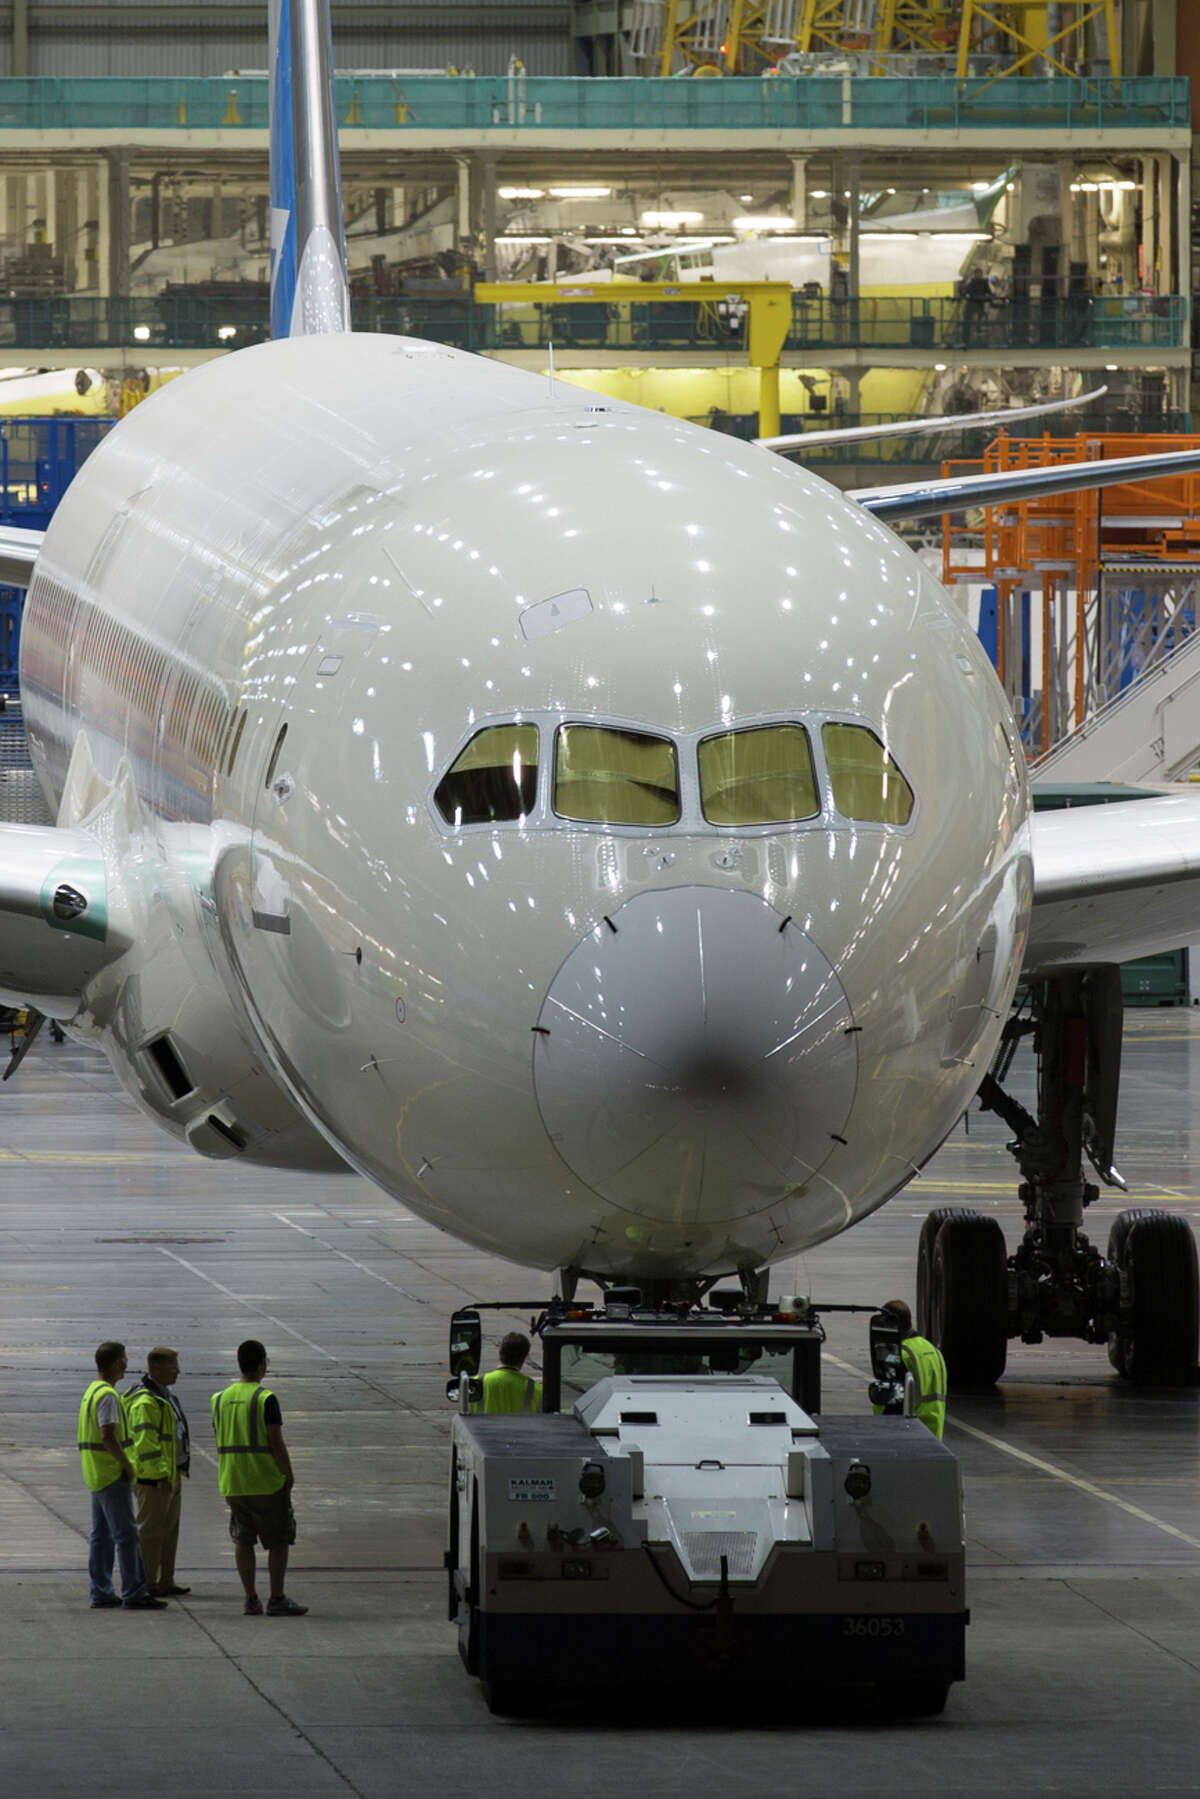 The first Boeing 787-9 widebody aircraft is towed out of the Everett factory on Wednesday, July 17, 2013. The passenger aircraft is a slightly larger version of the 787-8. It is about 20 feet longer and adds capacity for about 40 more passengers. The plane was moved from the plant in the middle of the night. Photos courtesy photographer Jeremy Dwyer-Lindgren.